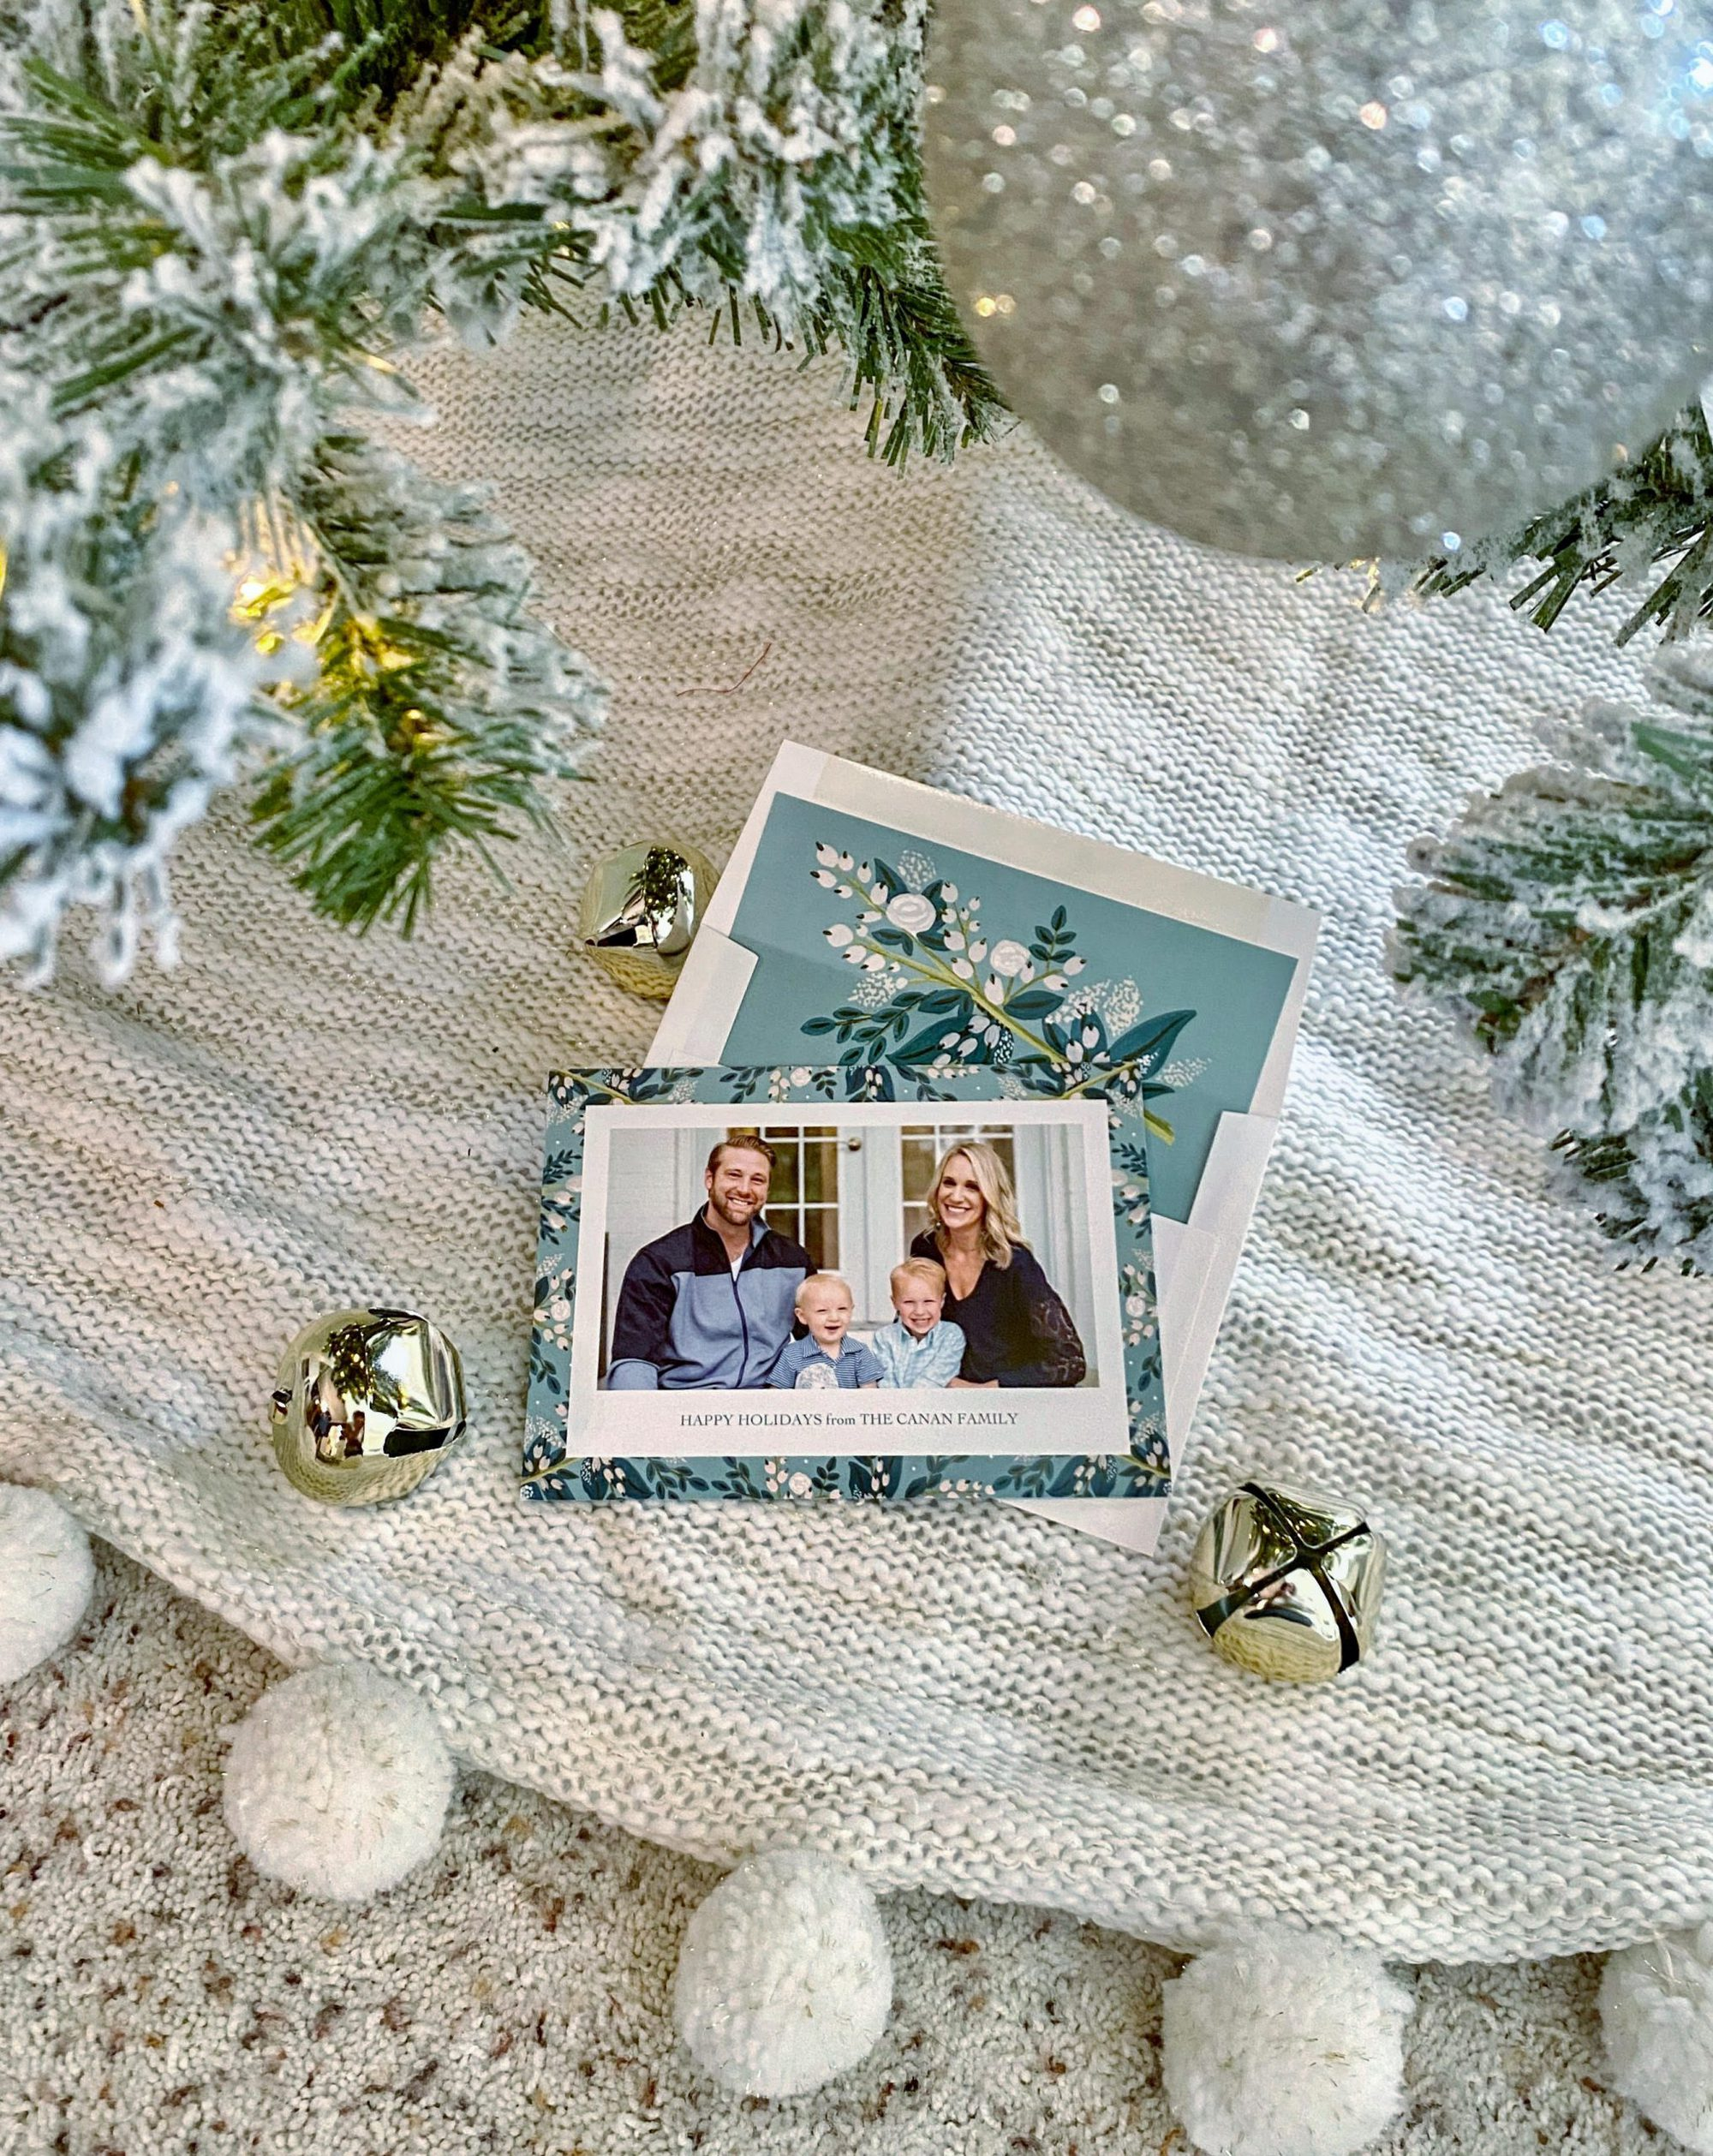 image of a family holiday card under a flocked christmas tree